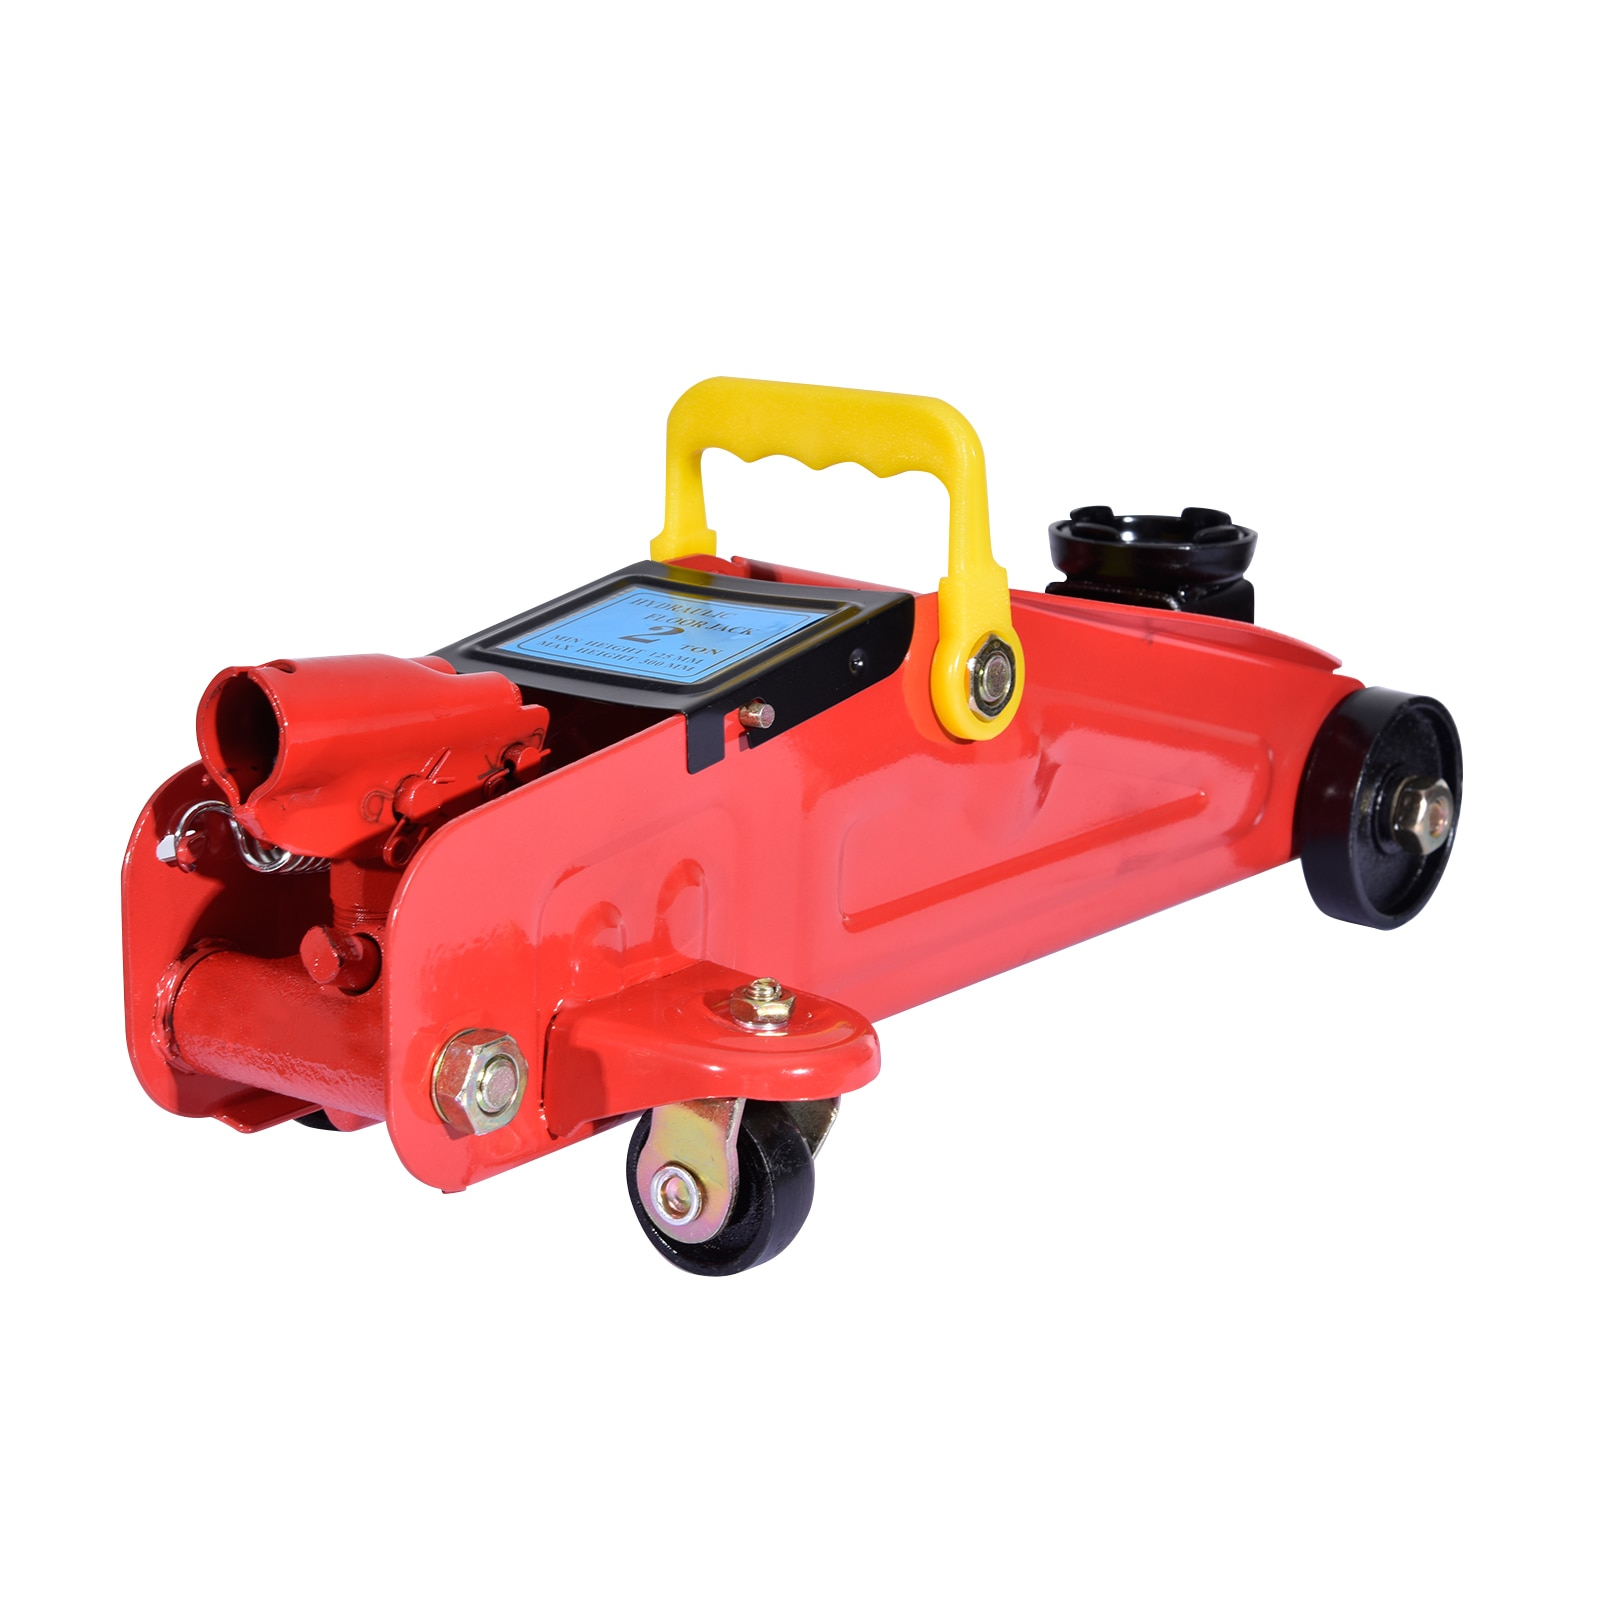 Roll-up Hydraulic Car Jack 2T Car Jacks Red Force Stayer Lifting Height 5.3-12 Inch